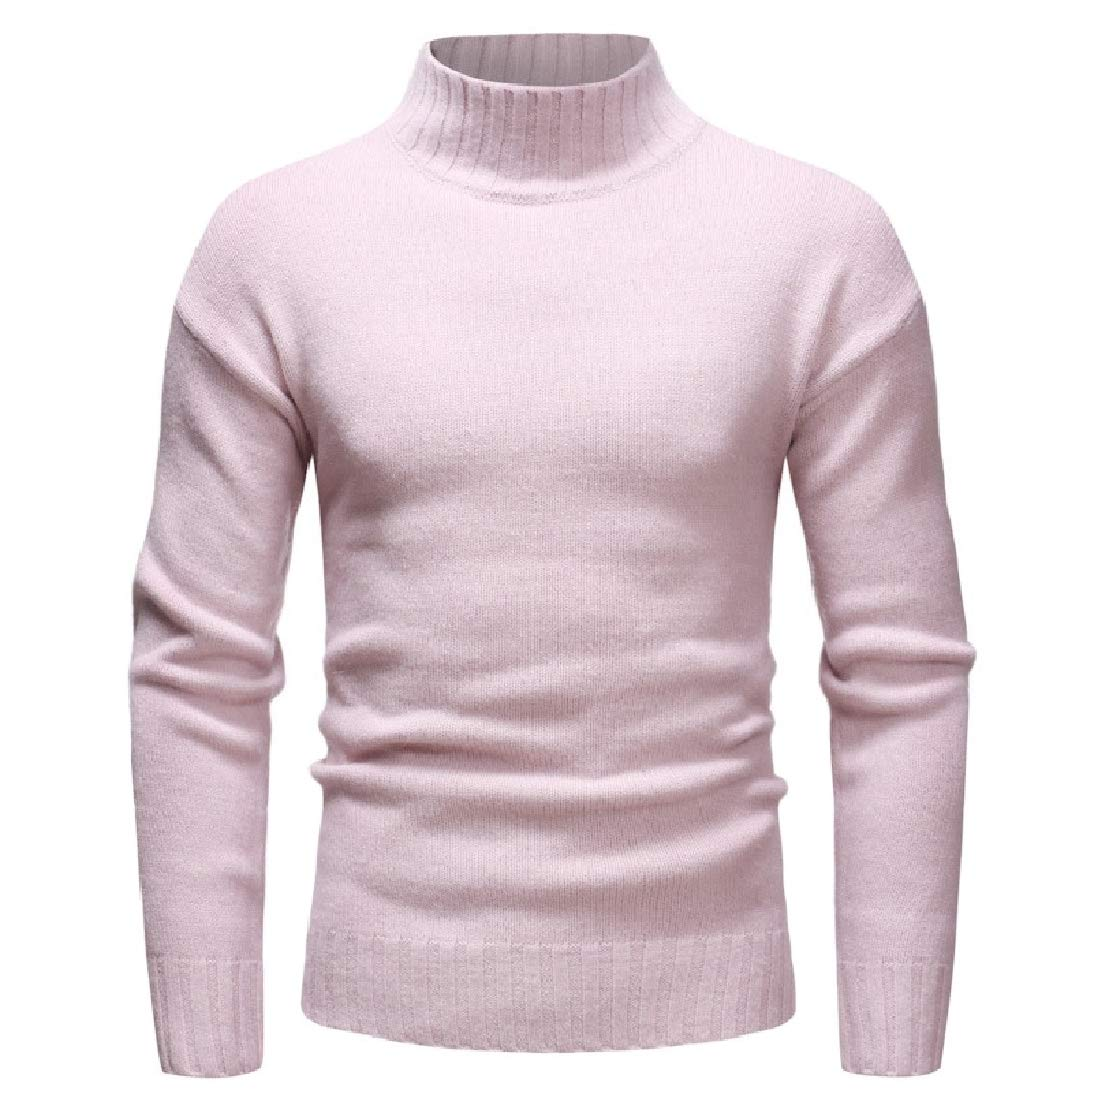 YUNY Mens Pullover Simple Chic Soft Knitwear Pure Color High Neck Sweaters Pink S